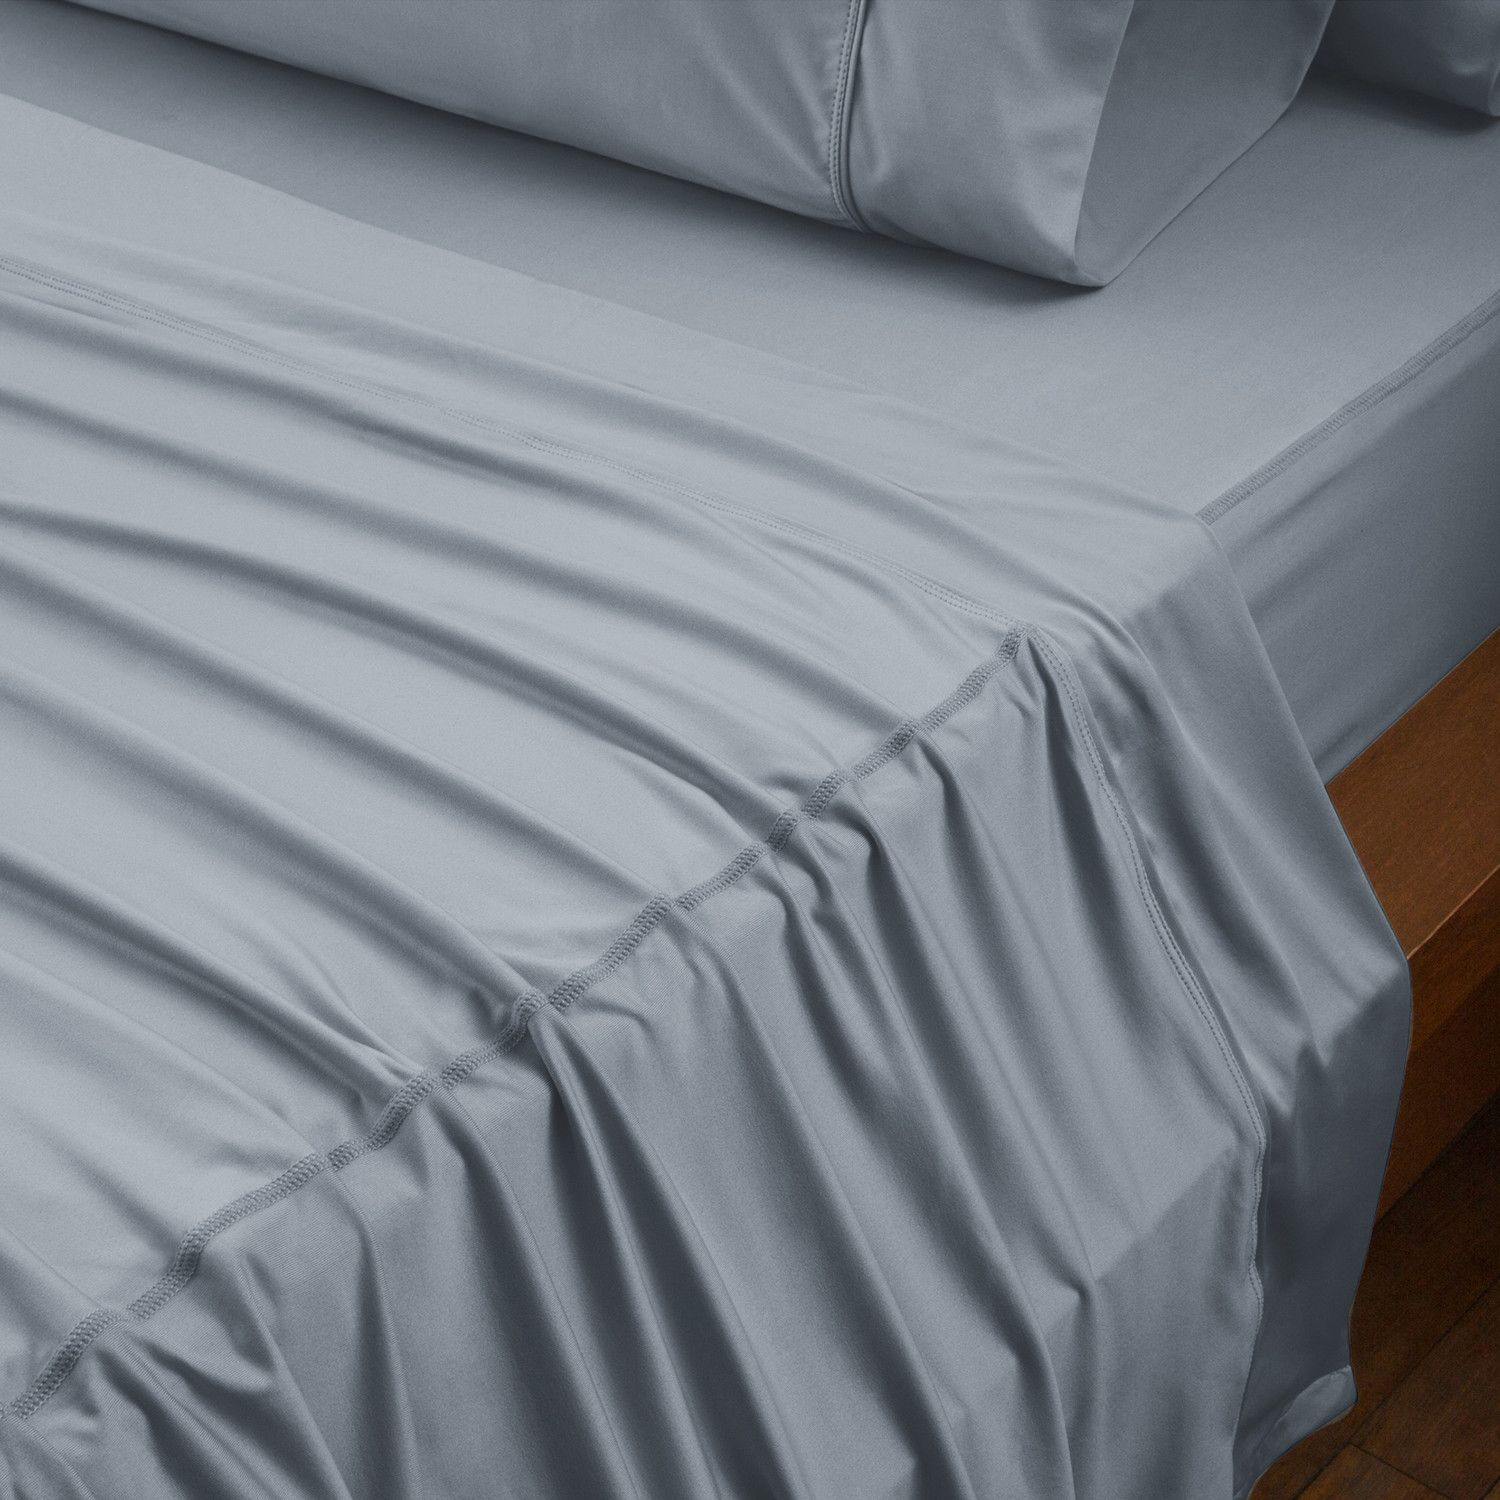 Original Performance Collection Pearl Blue In 2020 Sheet Sets Best Sheets Luxury Bedding